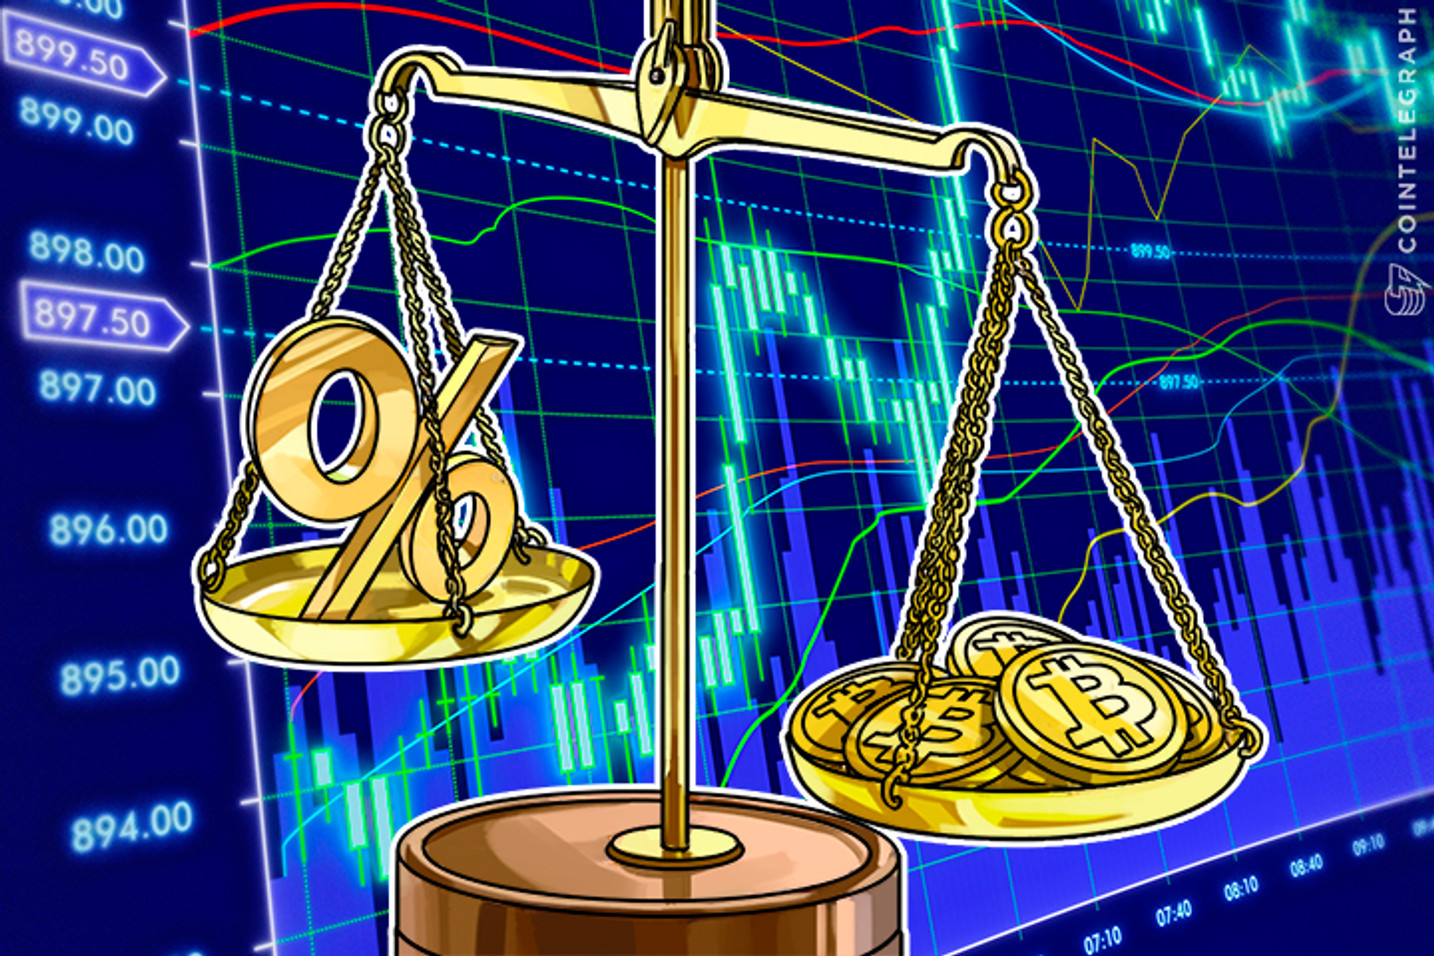 Bitcoin Margin Trading Record High in November, London-Based Firm Reports